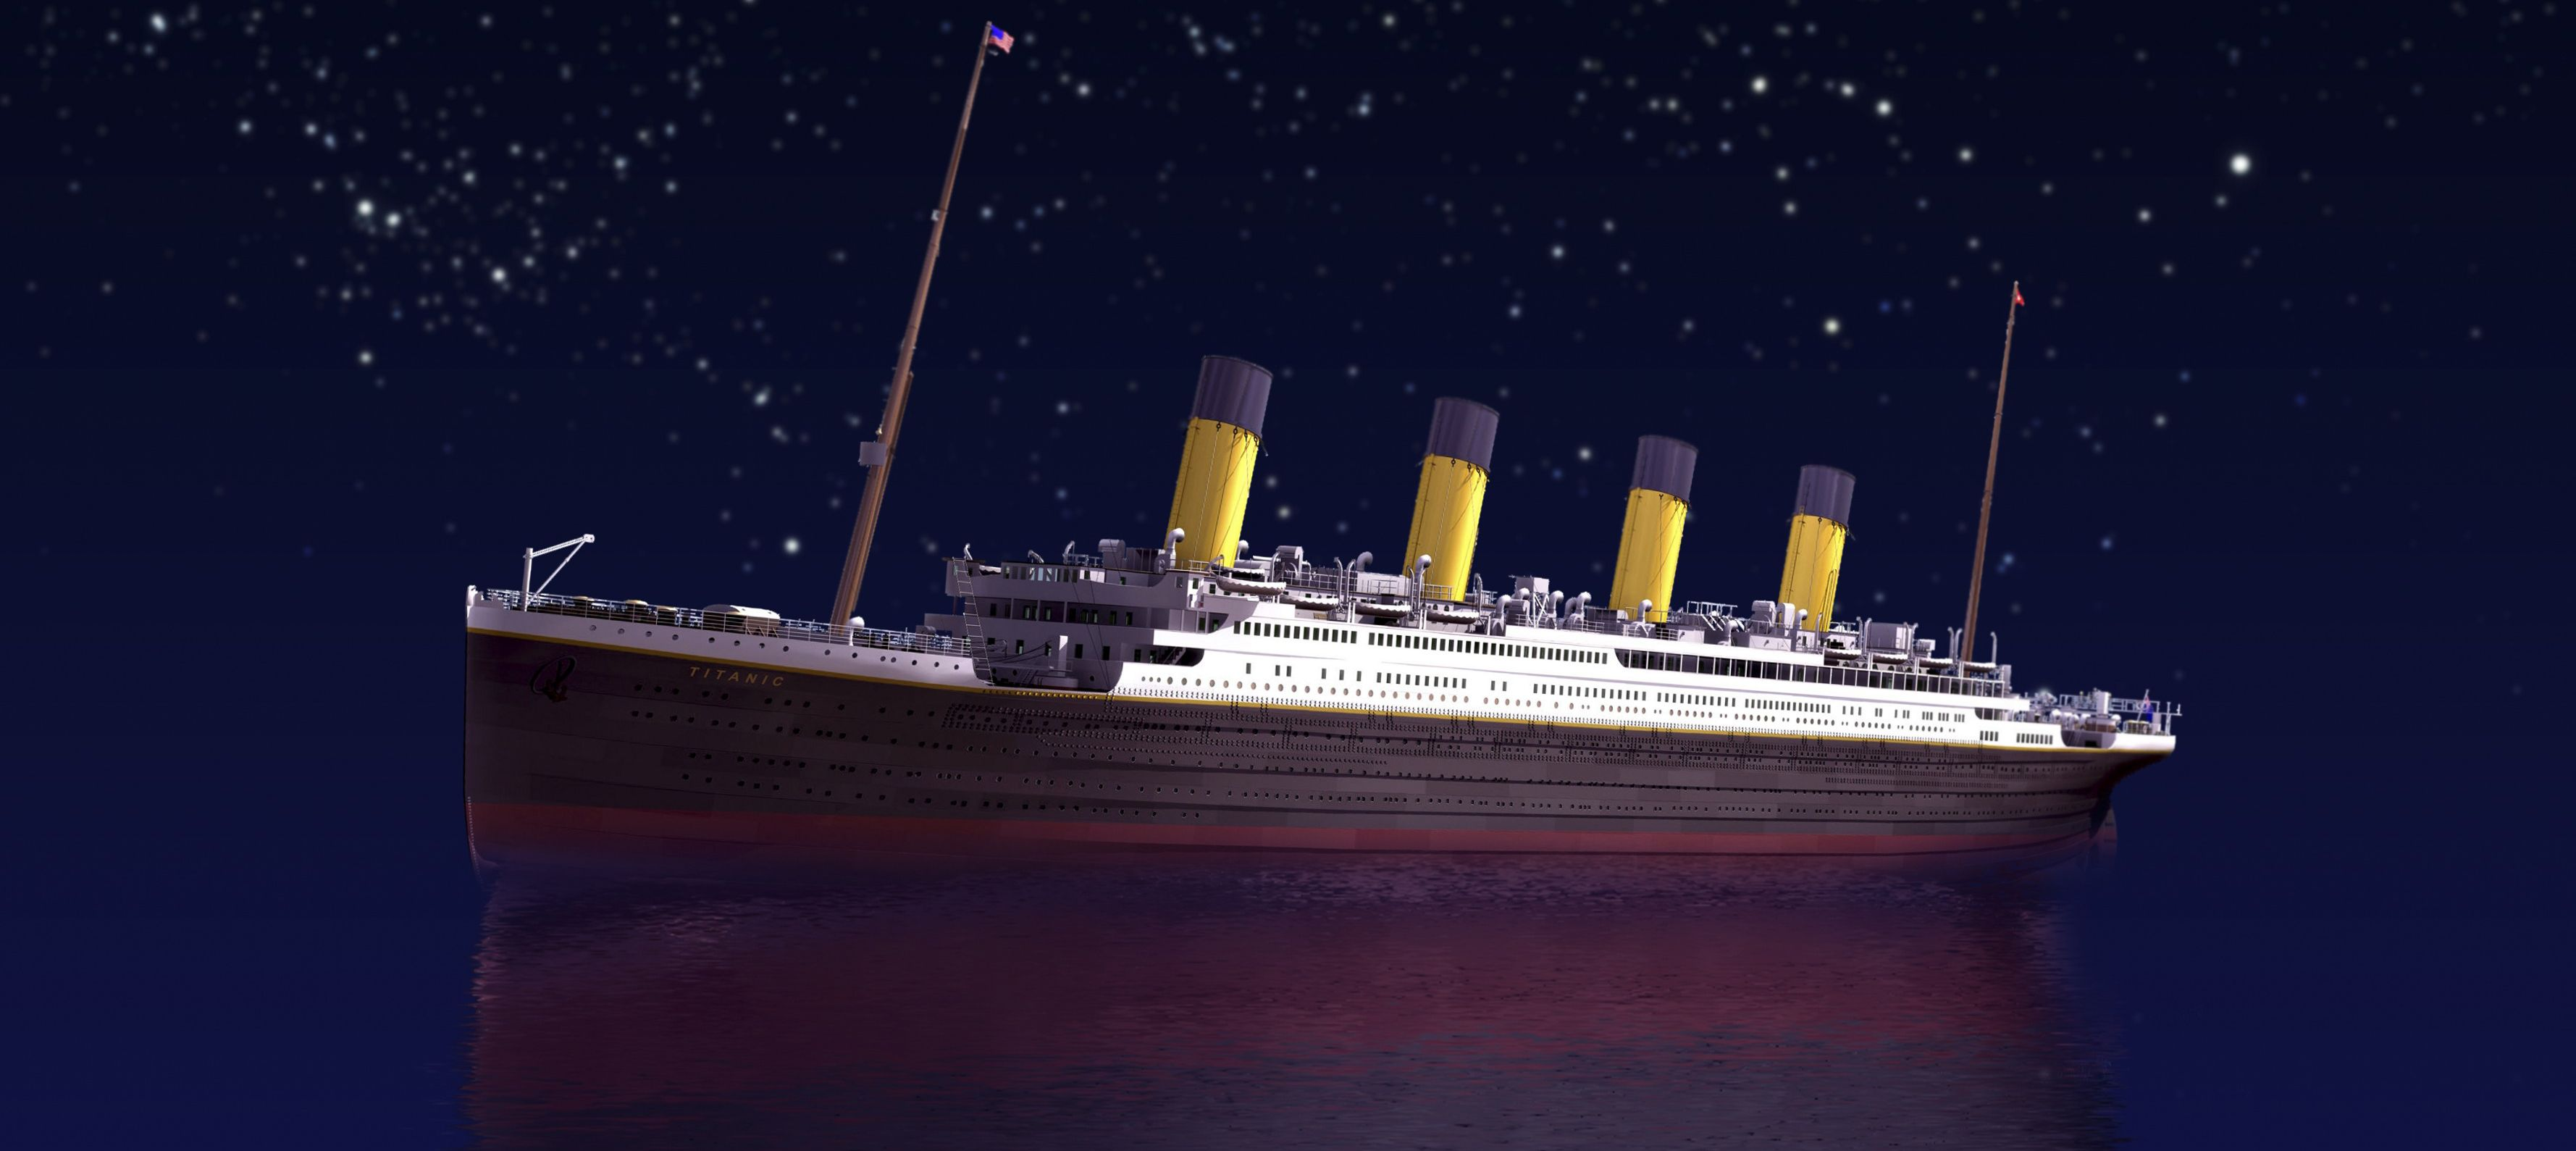 Finding The Titanic Book